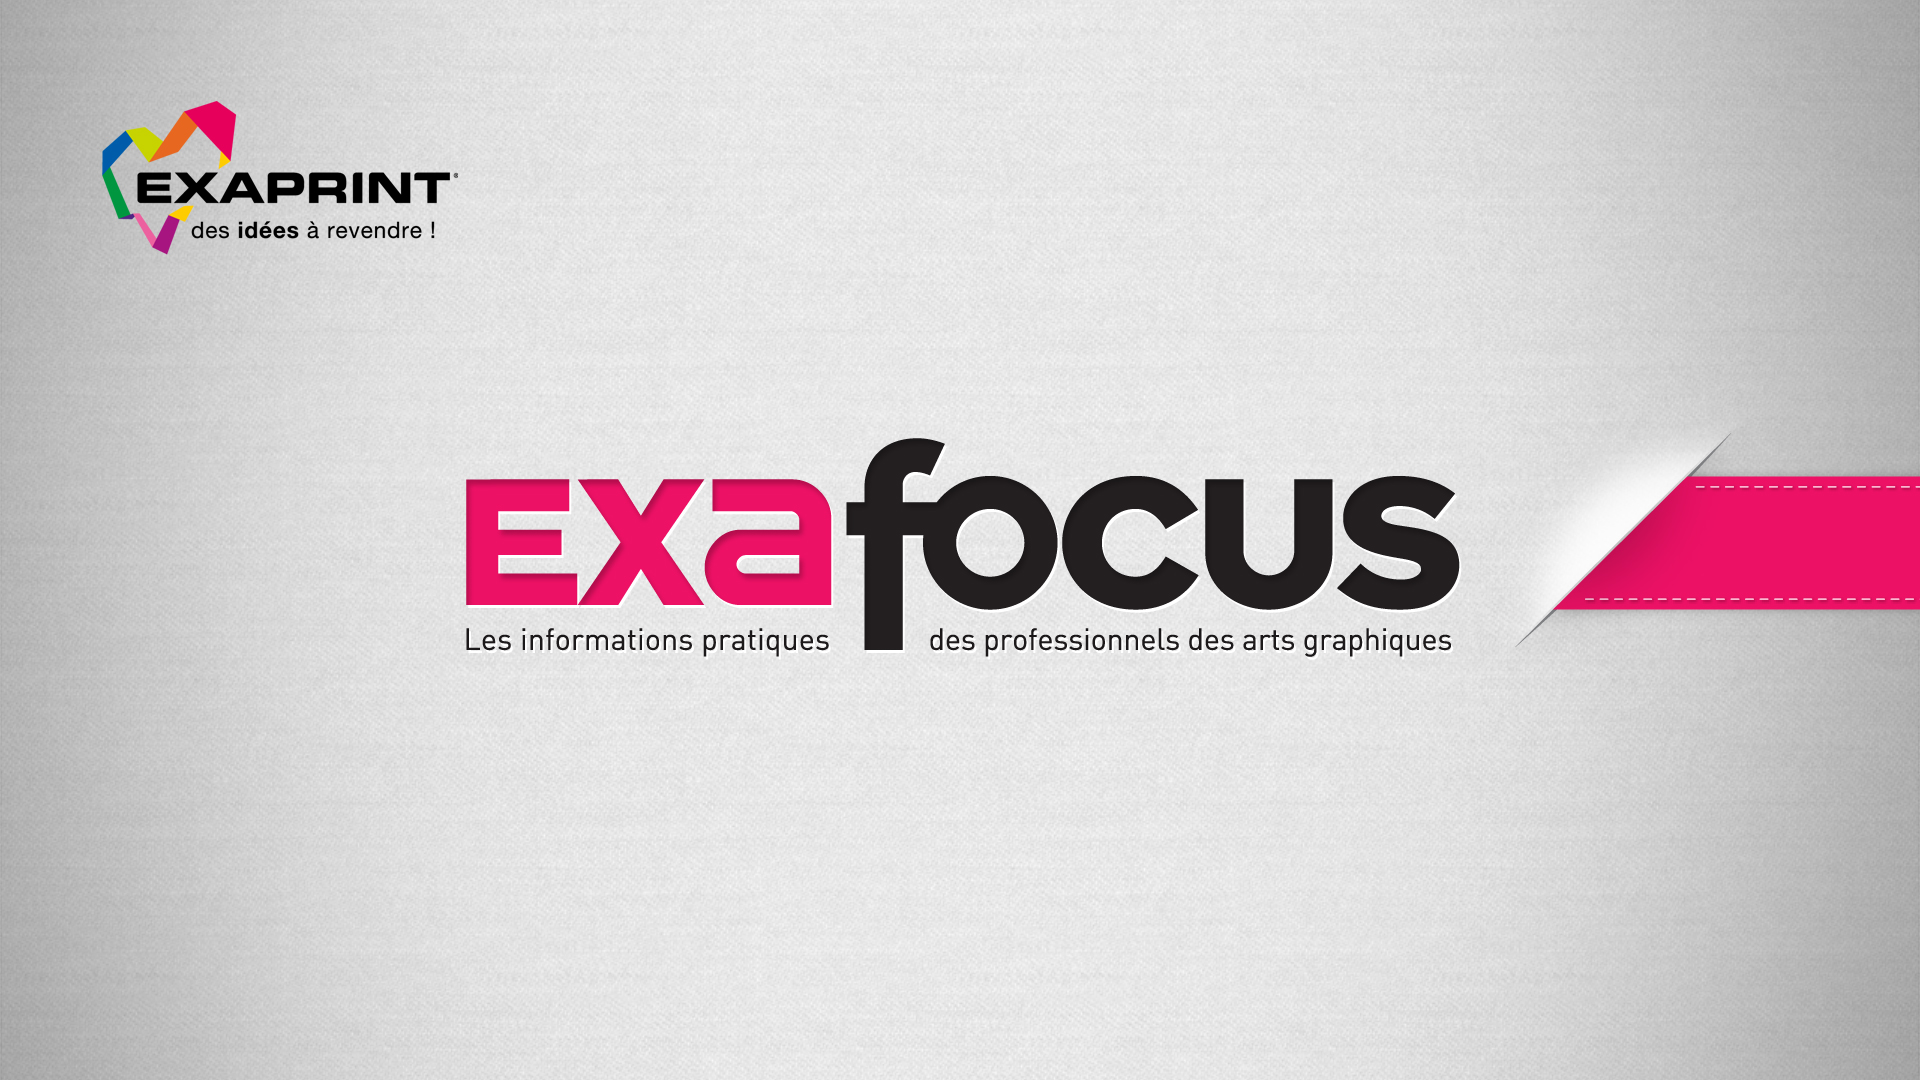 exaprint-exafocus-creation-logo-identite-plaquette-charte-editoriale-communication-caconcept-alexis-cretin-graphiste